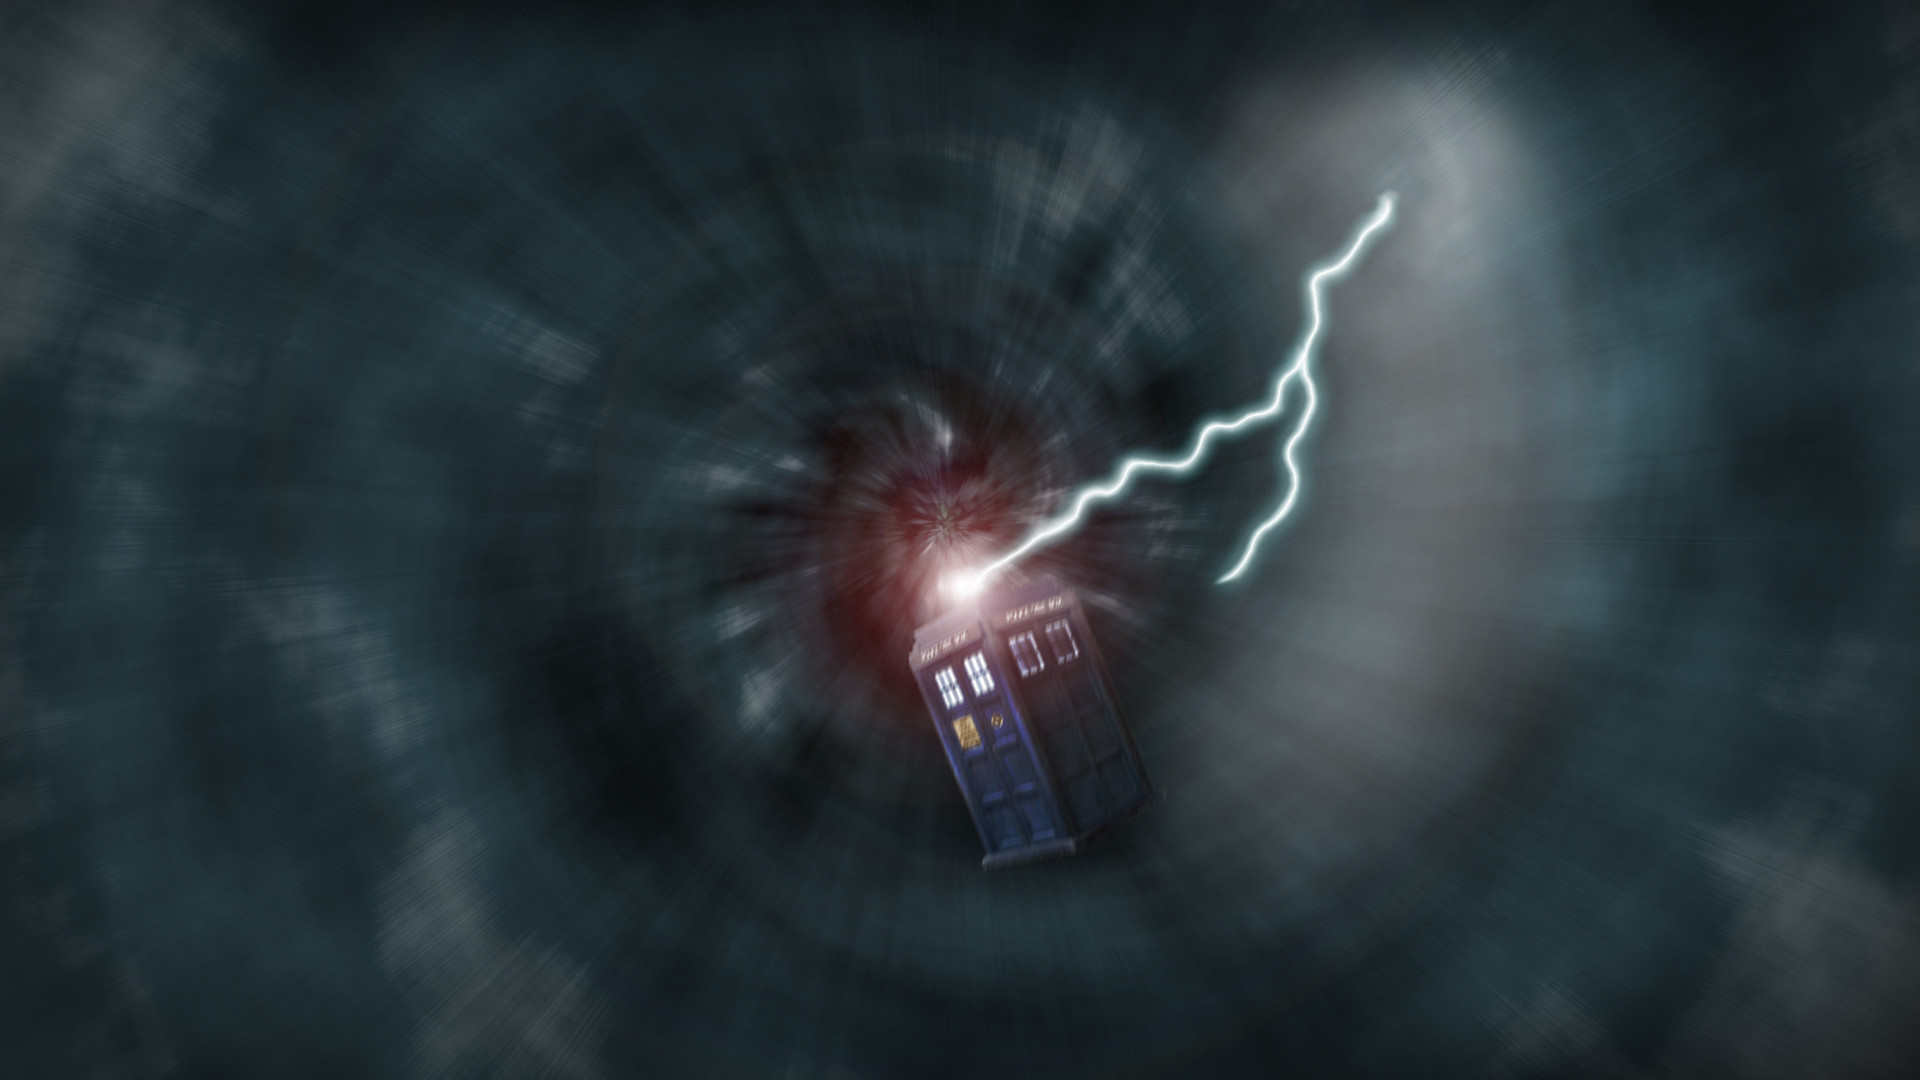 Doctor who wallpapers HD A12 – Dr Who Wallpapers | Doctor who backgrounds |  doctor who